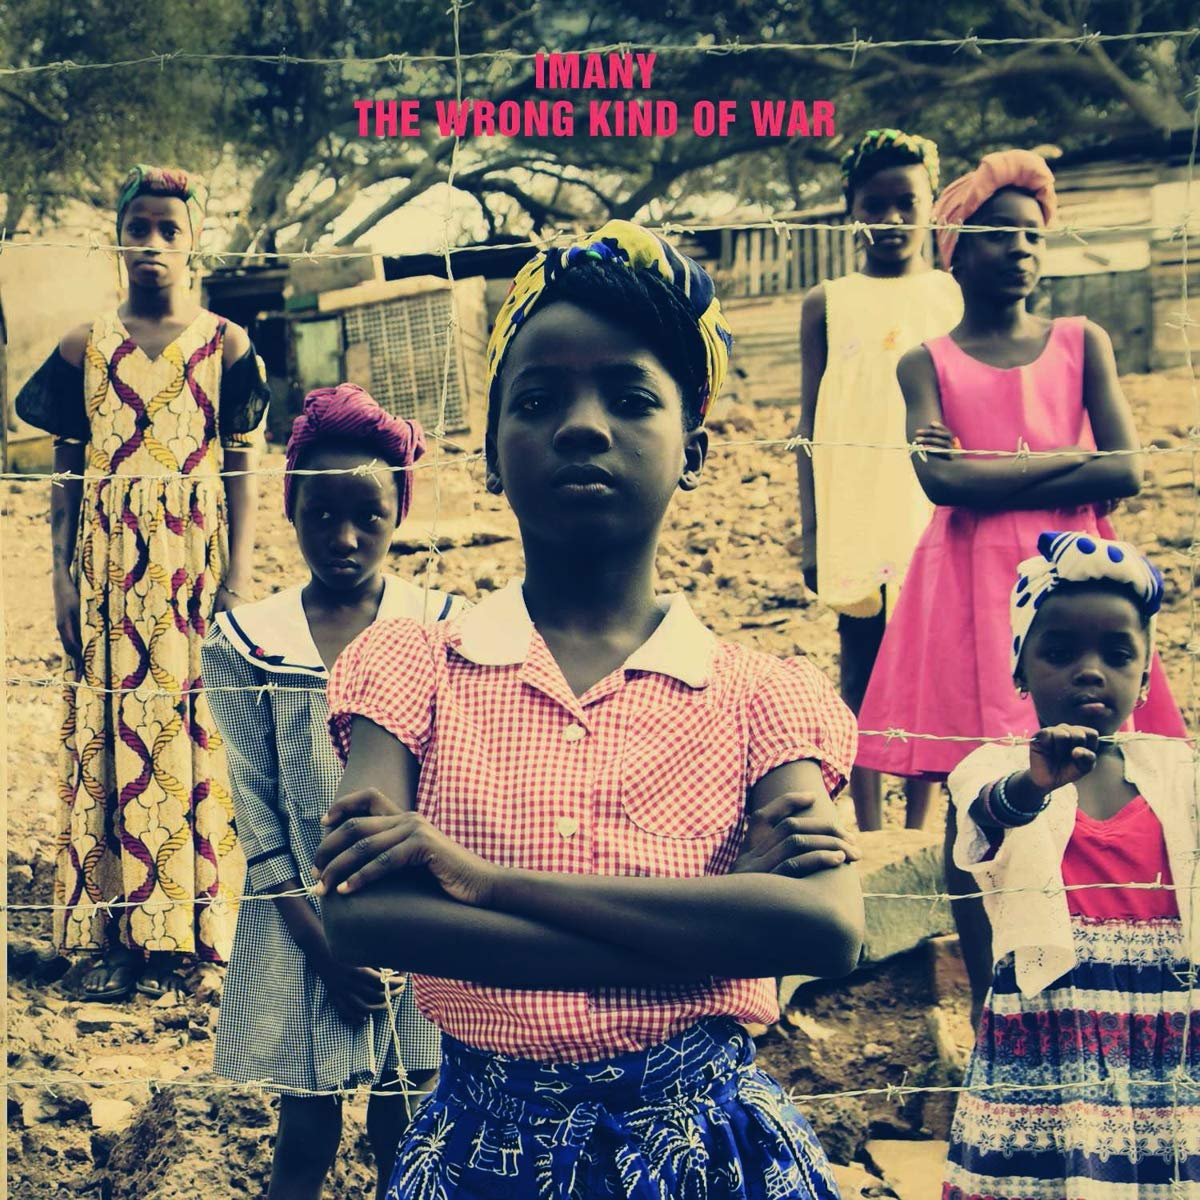 Imany The Wrong Kind of War